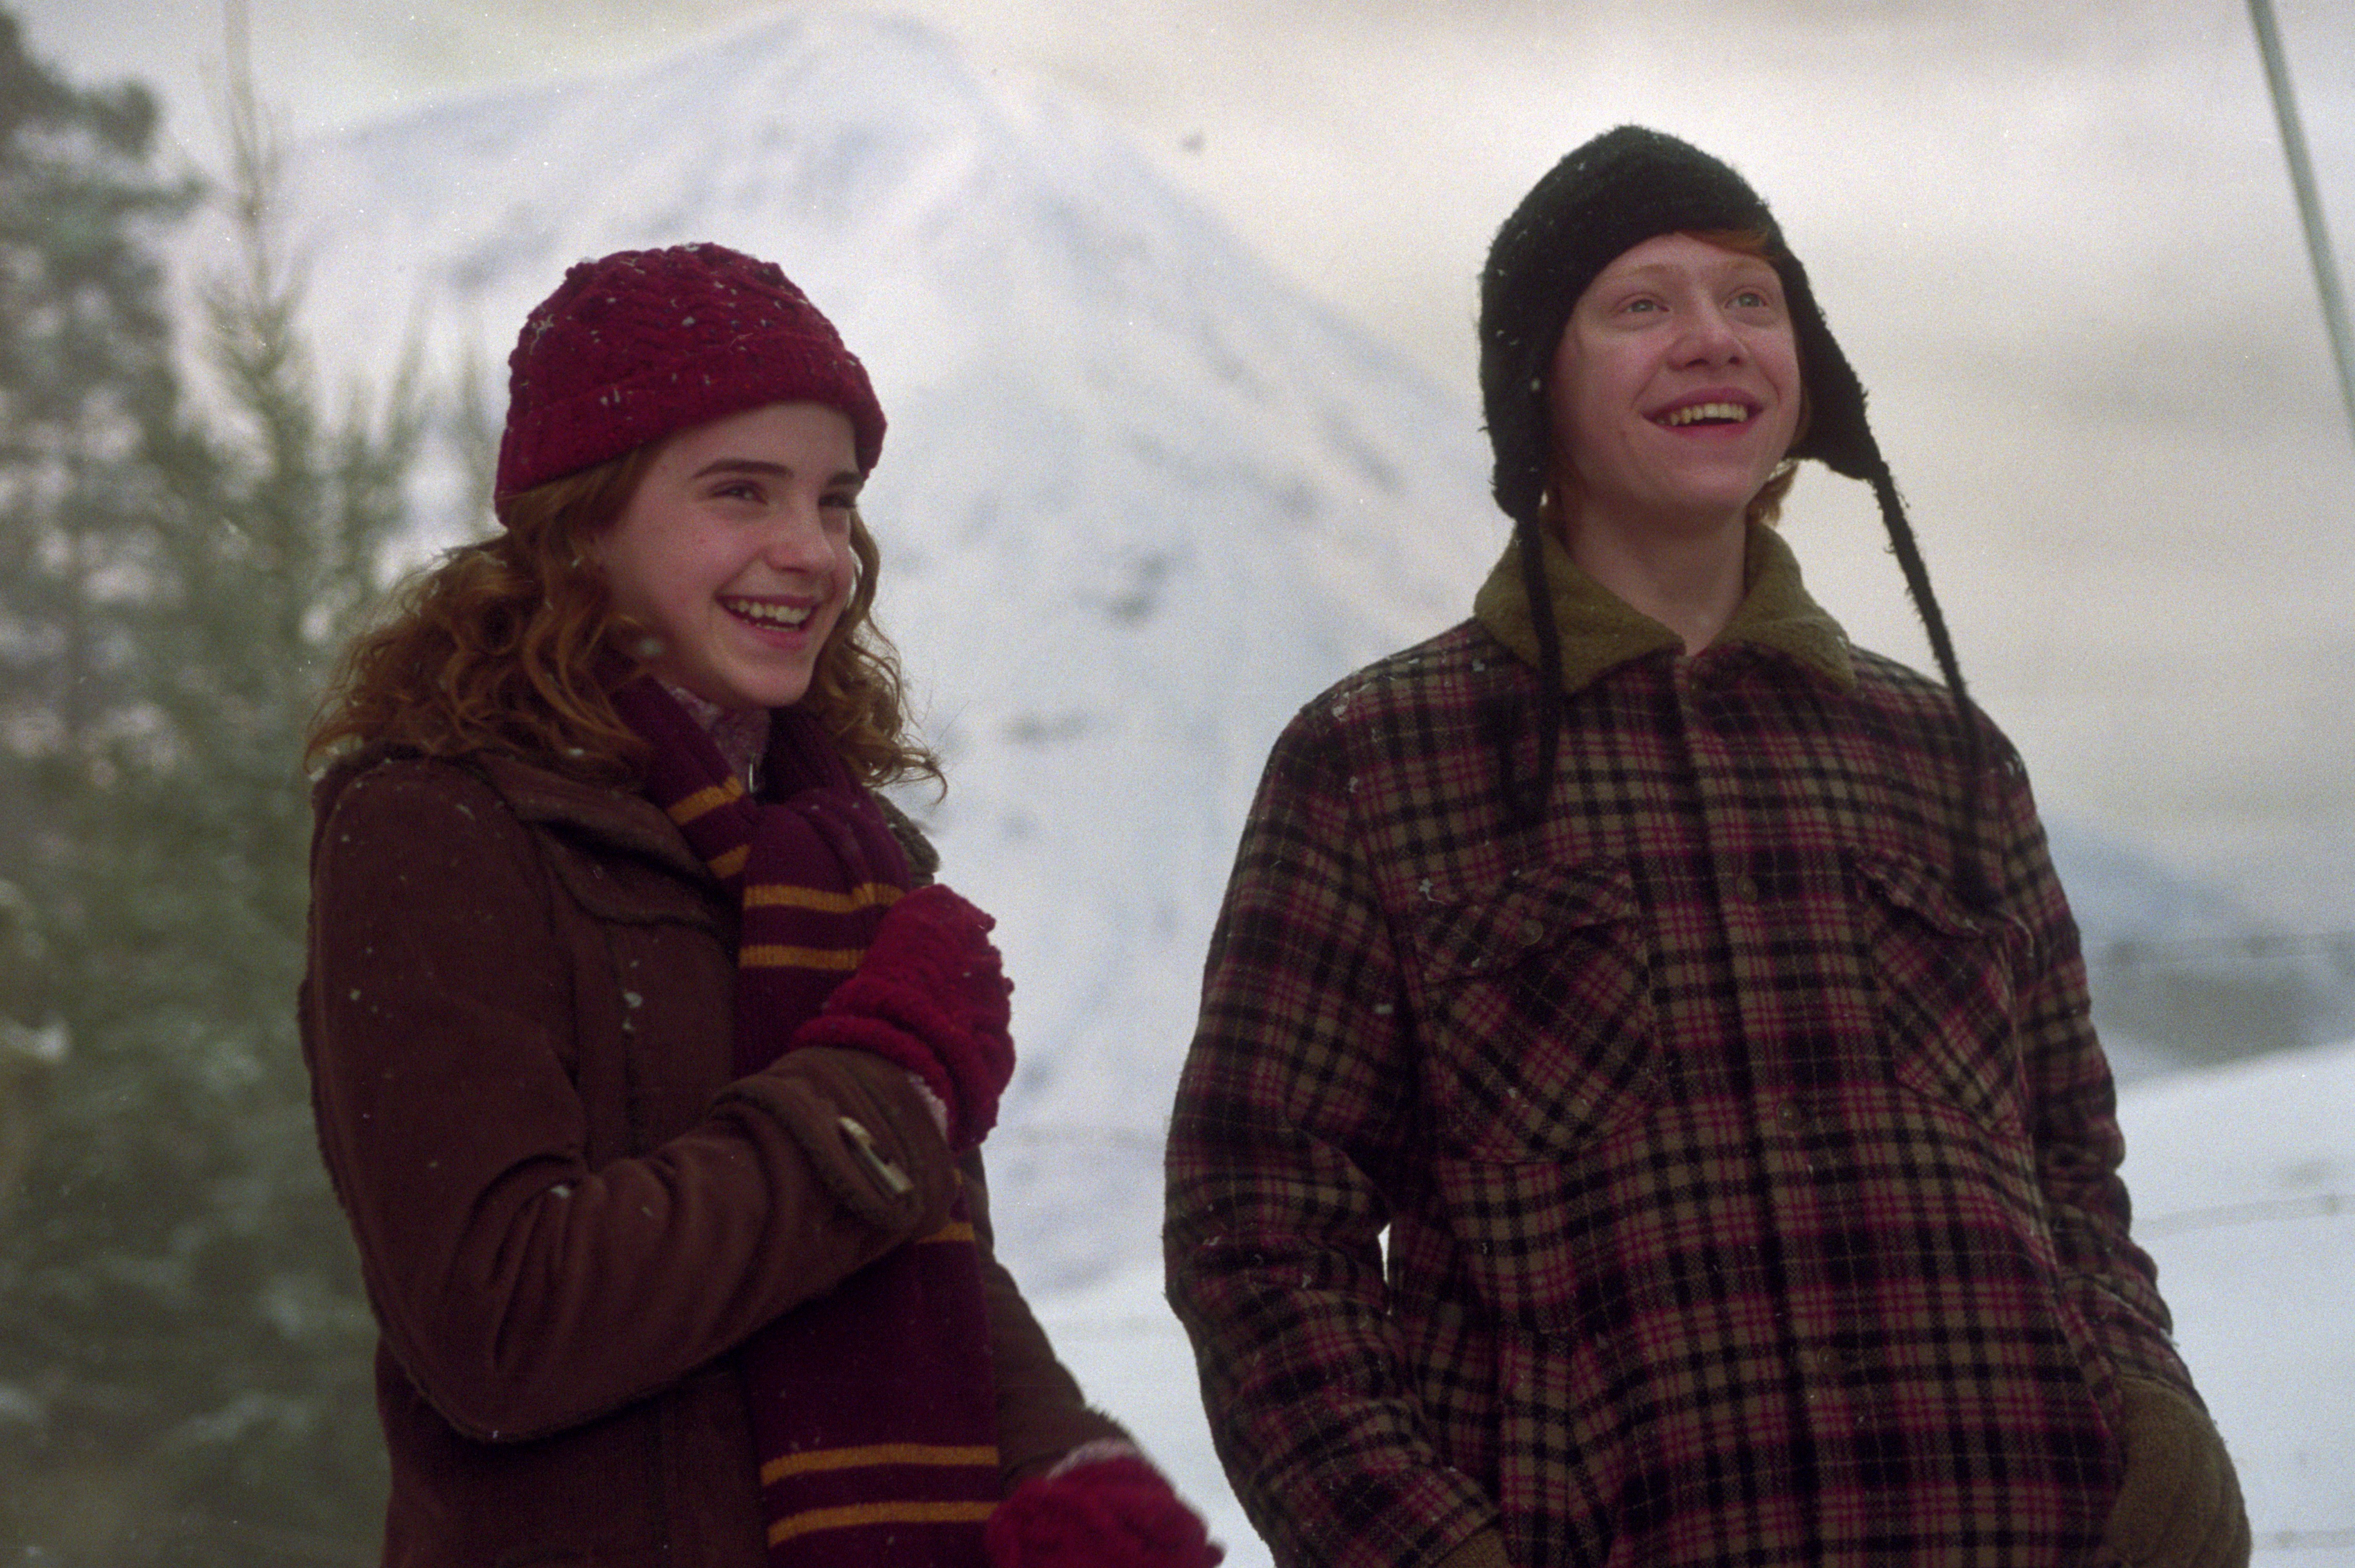 image-web-HP3-hermione-ron-laughing-snow-winter